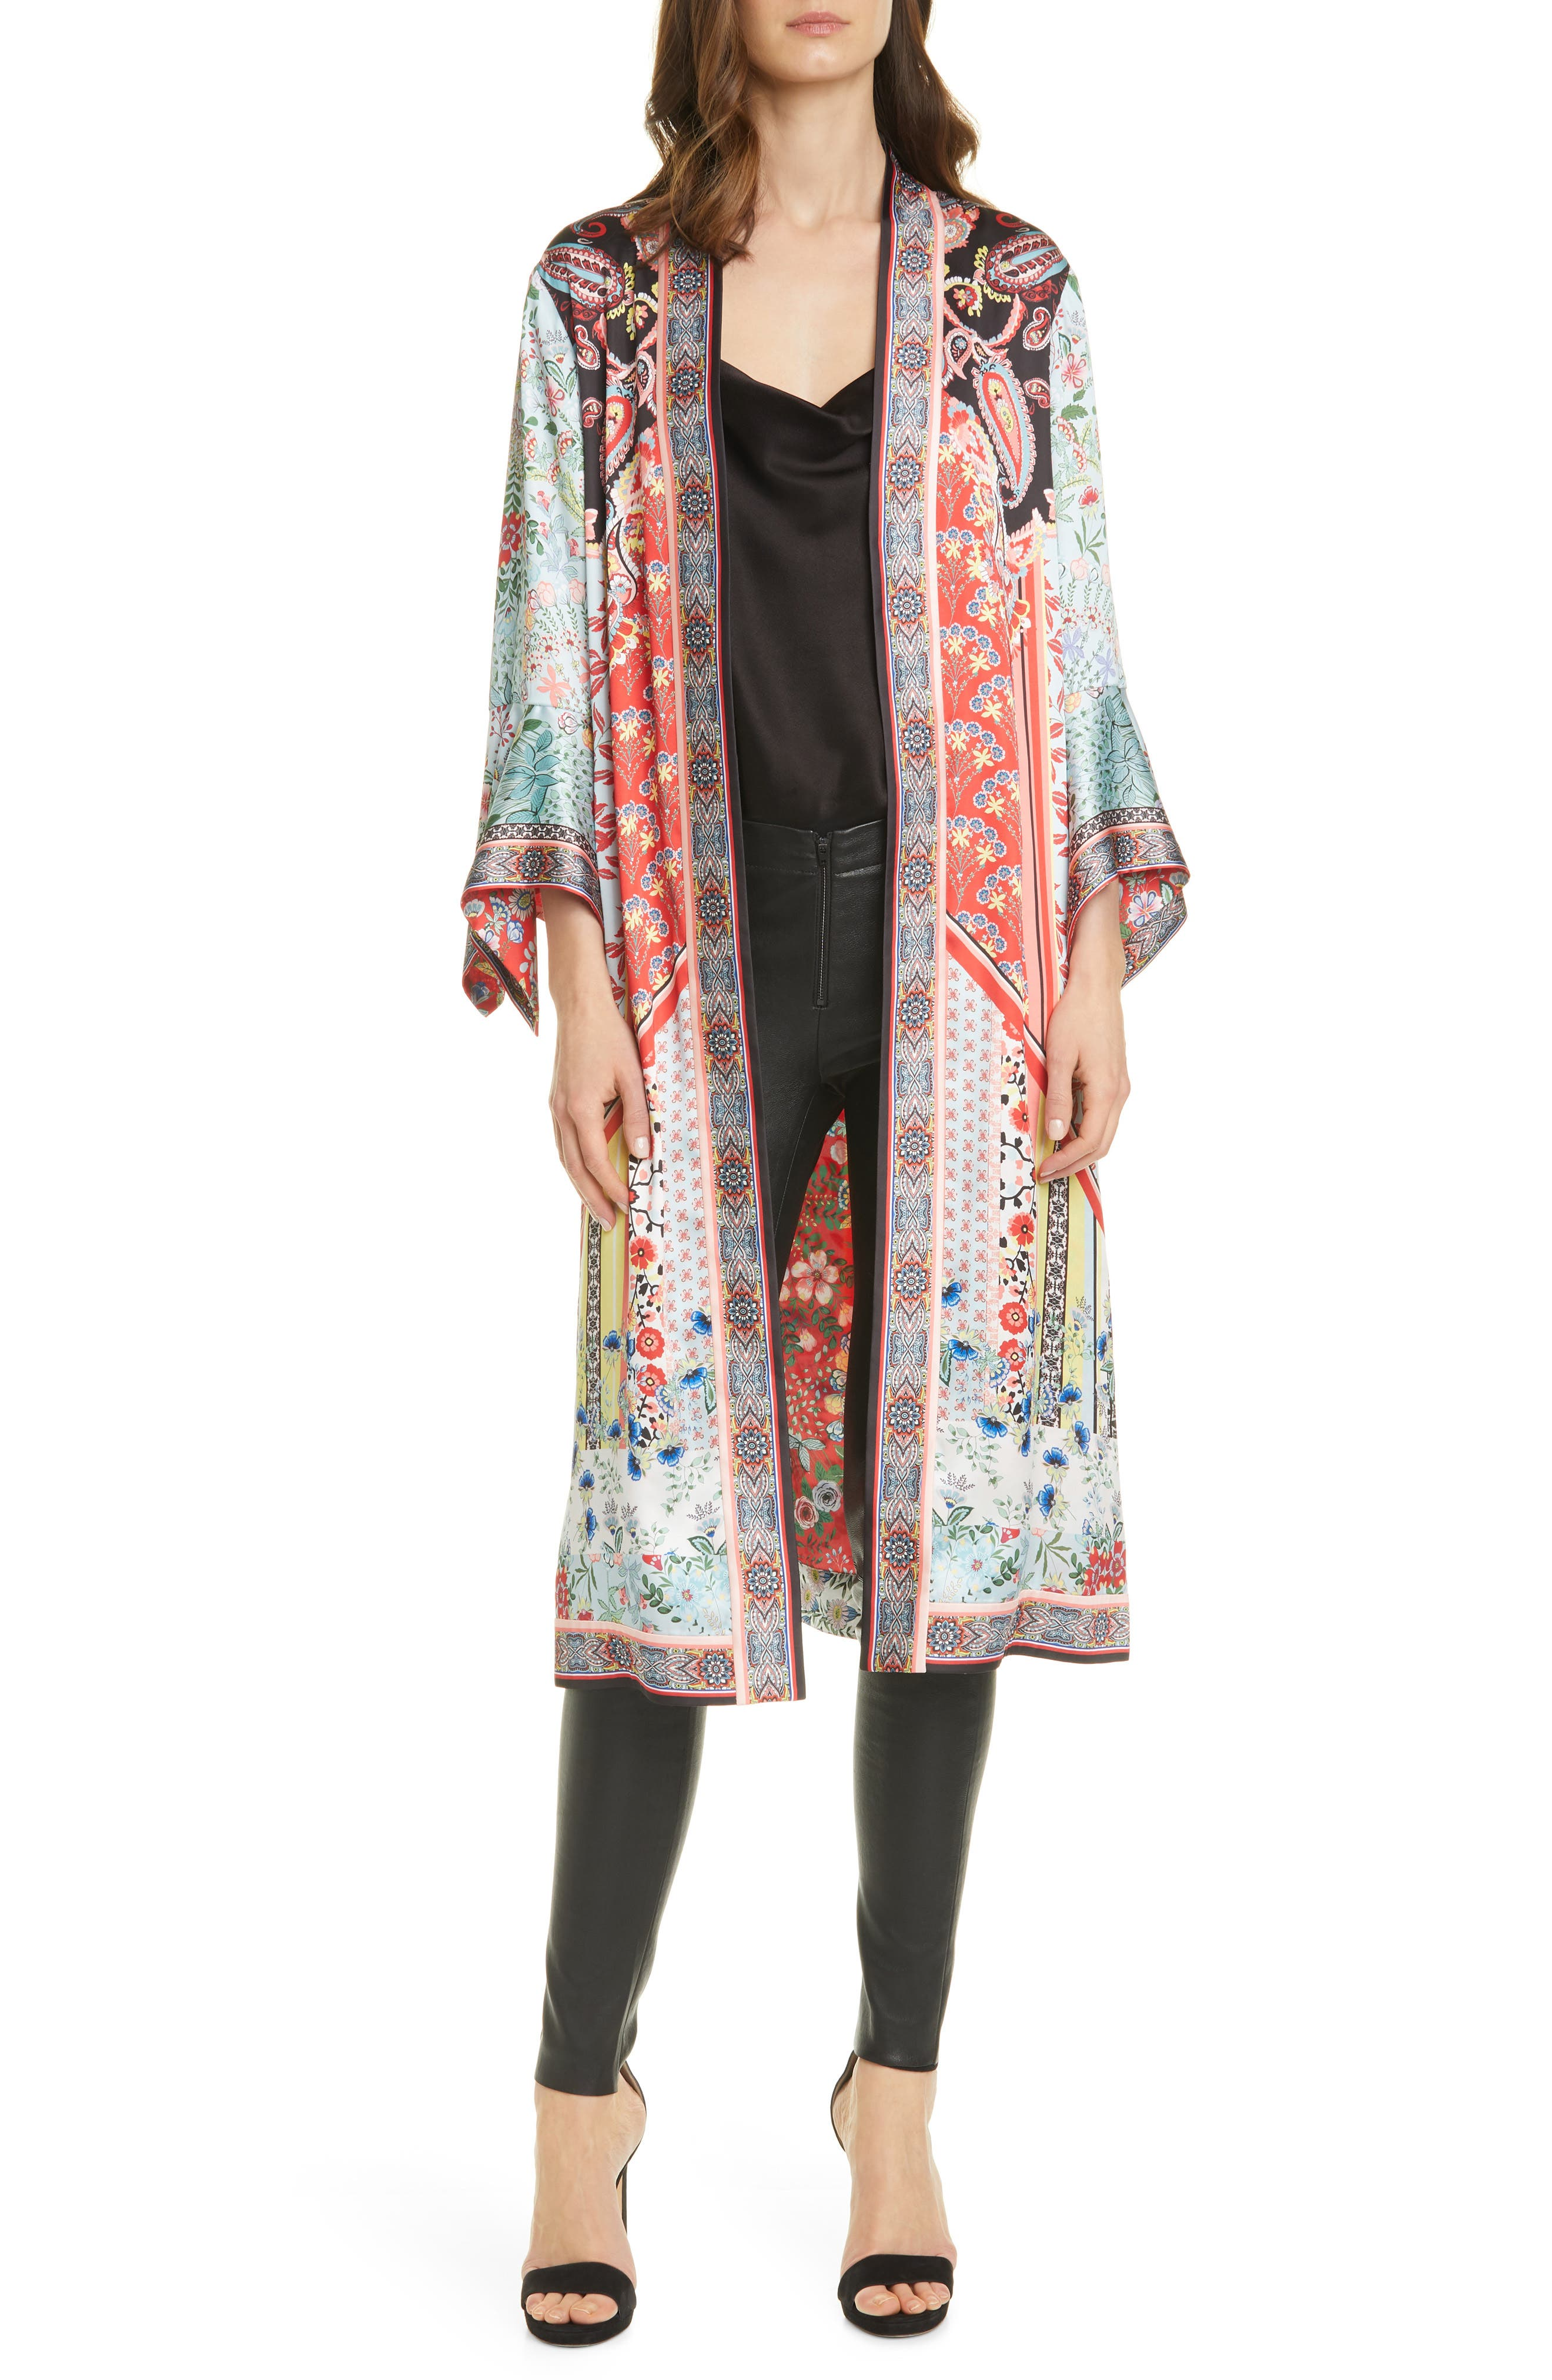 Vintage Coats & Jackets | Retro Coats and Jackets Womens Alice  Olivia Lynn Reversible Duster $371.25 AT vintagedancer.com